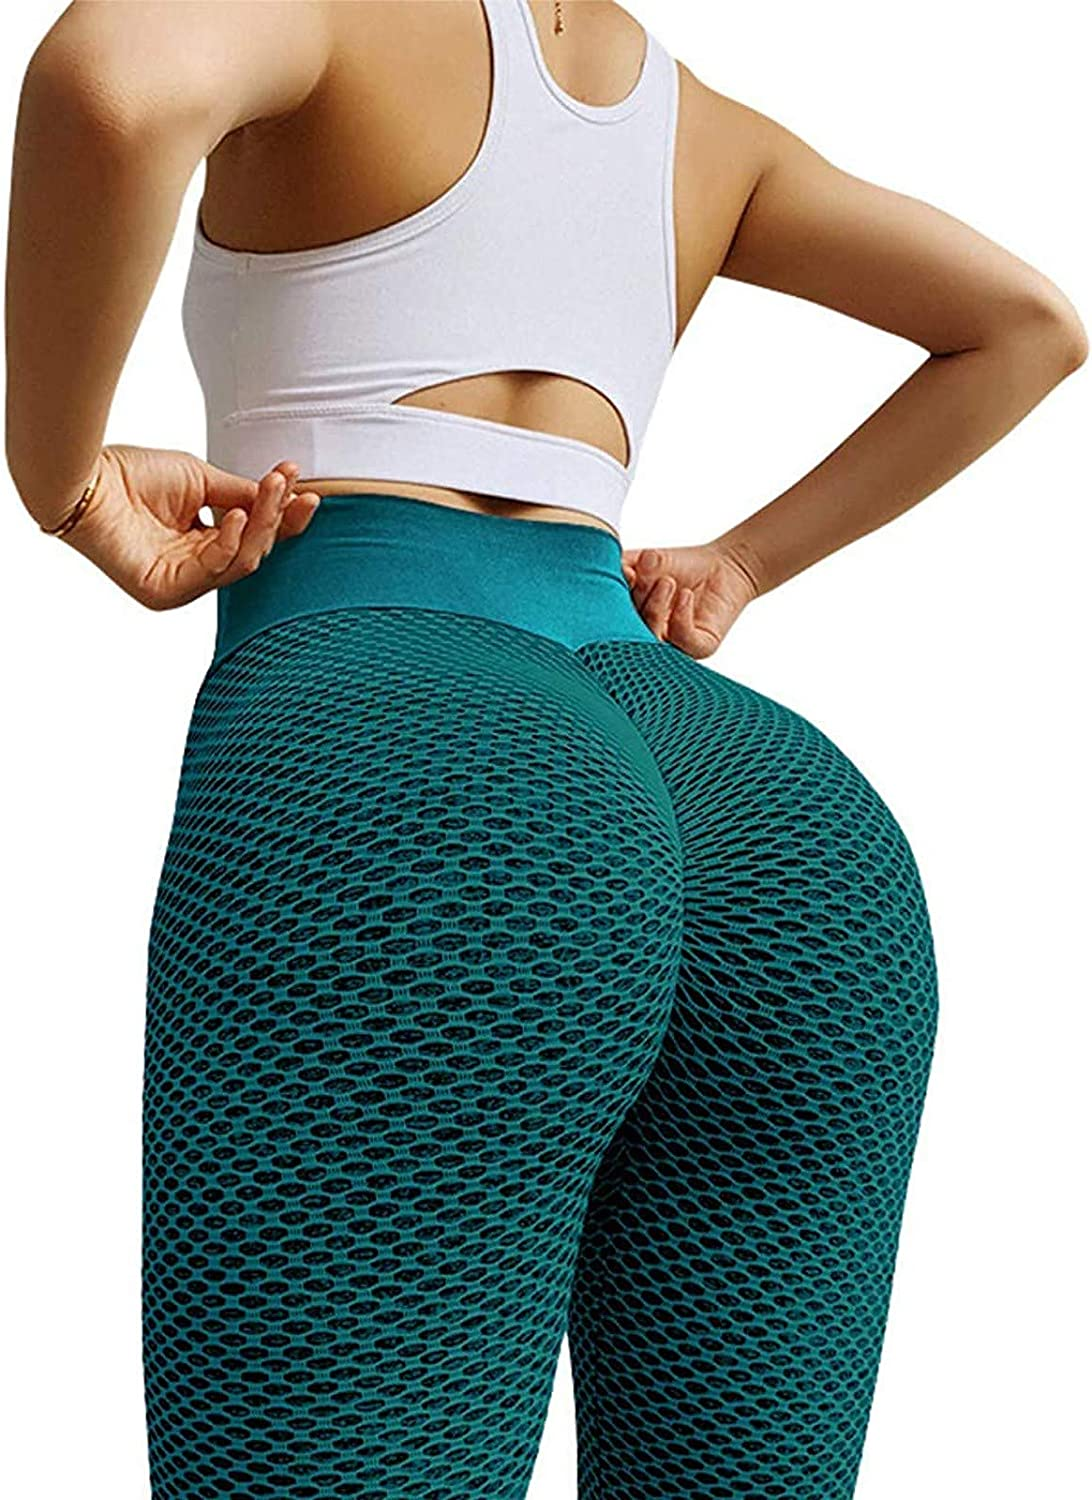 HIKO23 Womens High Max 59% OFF Waist Yoga Workout Ruched Tummy Under blast sales Control Pants